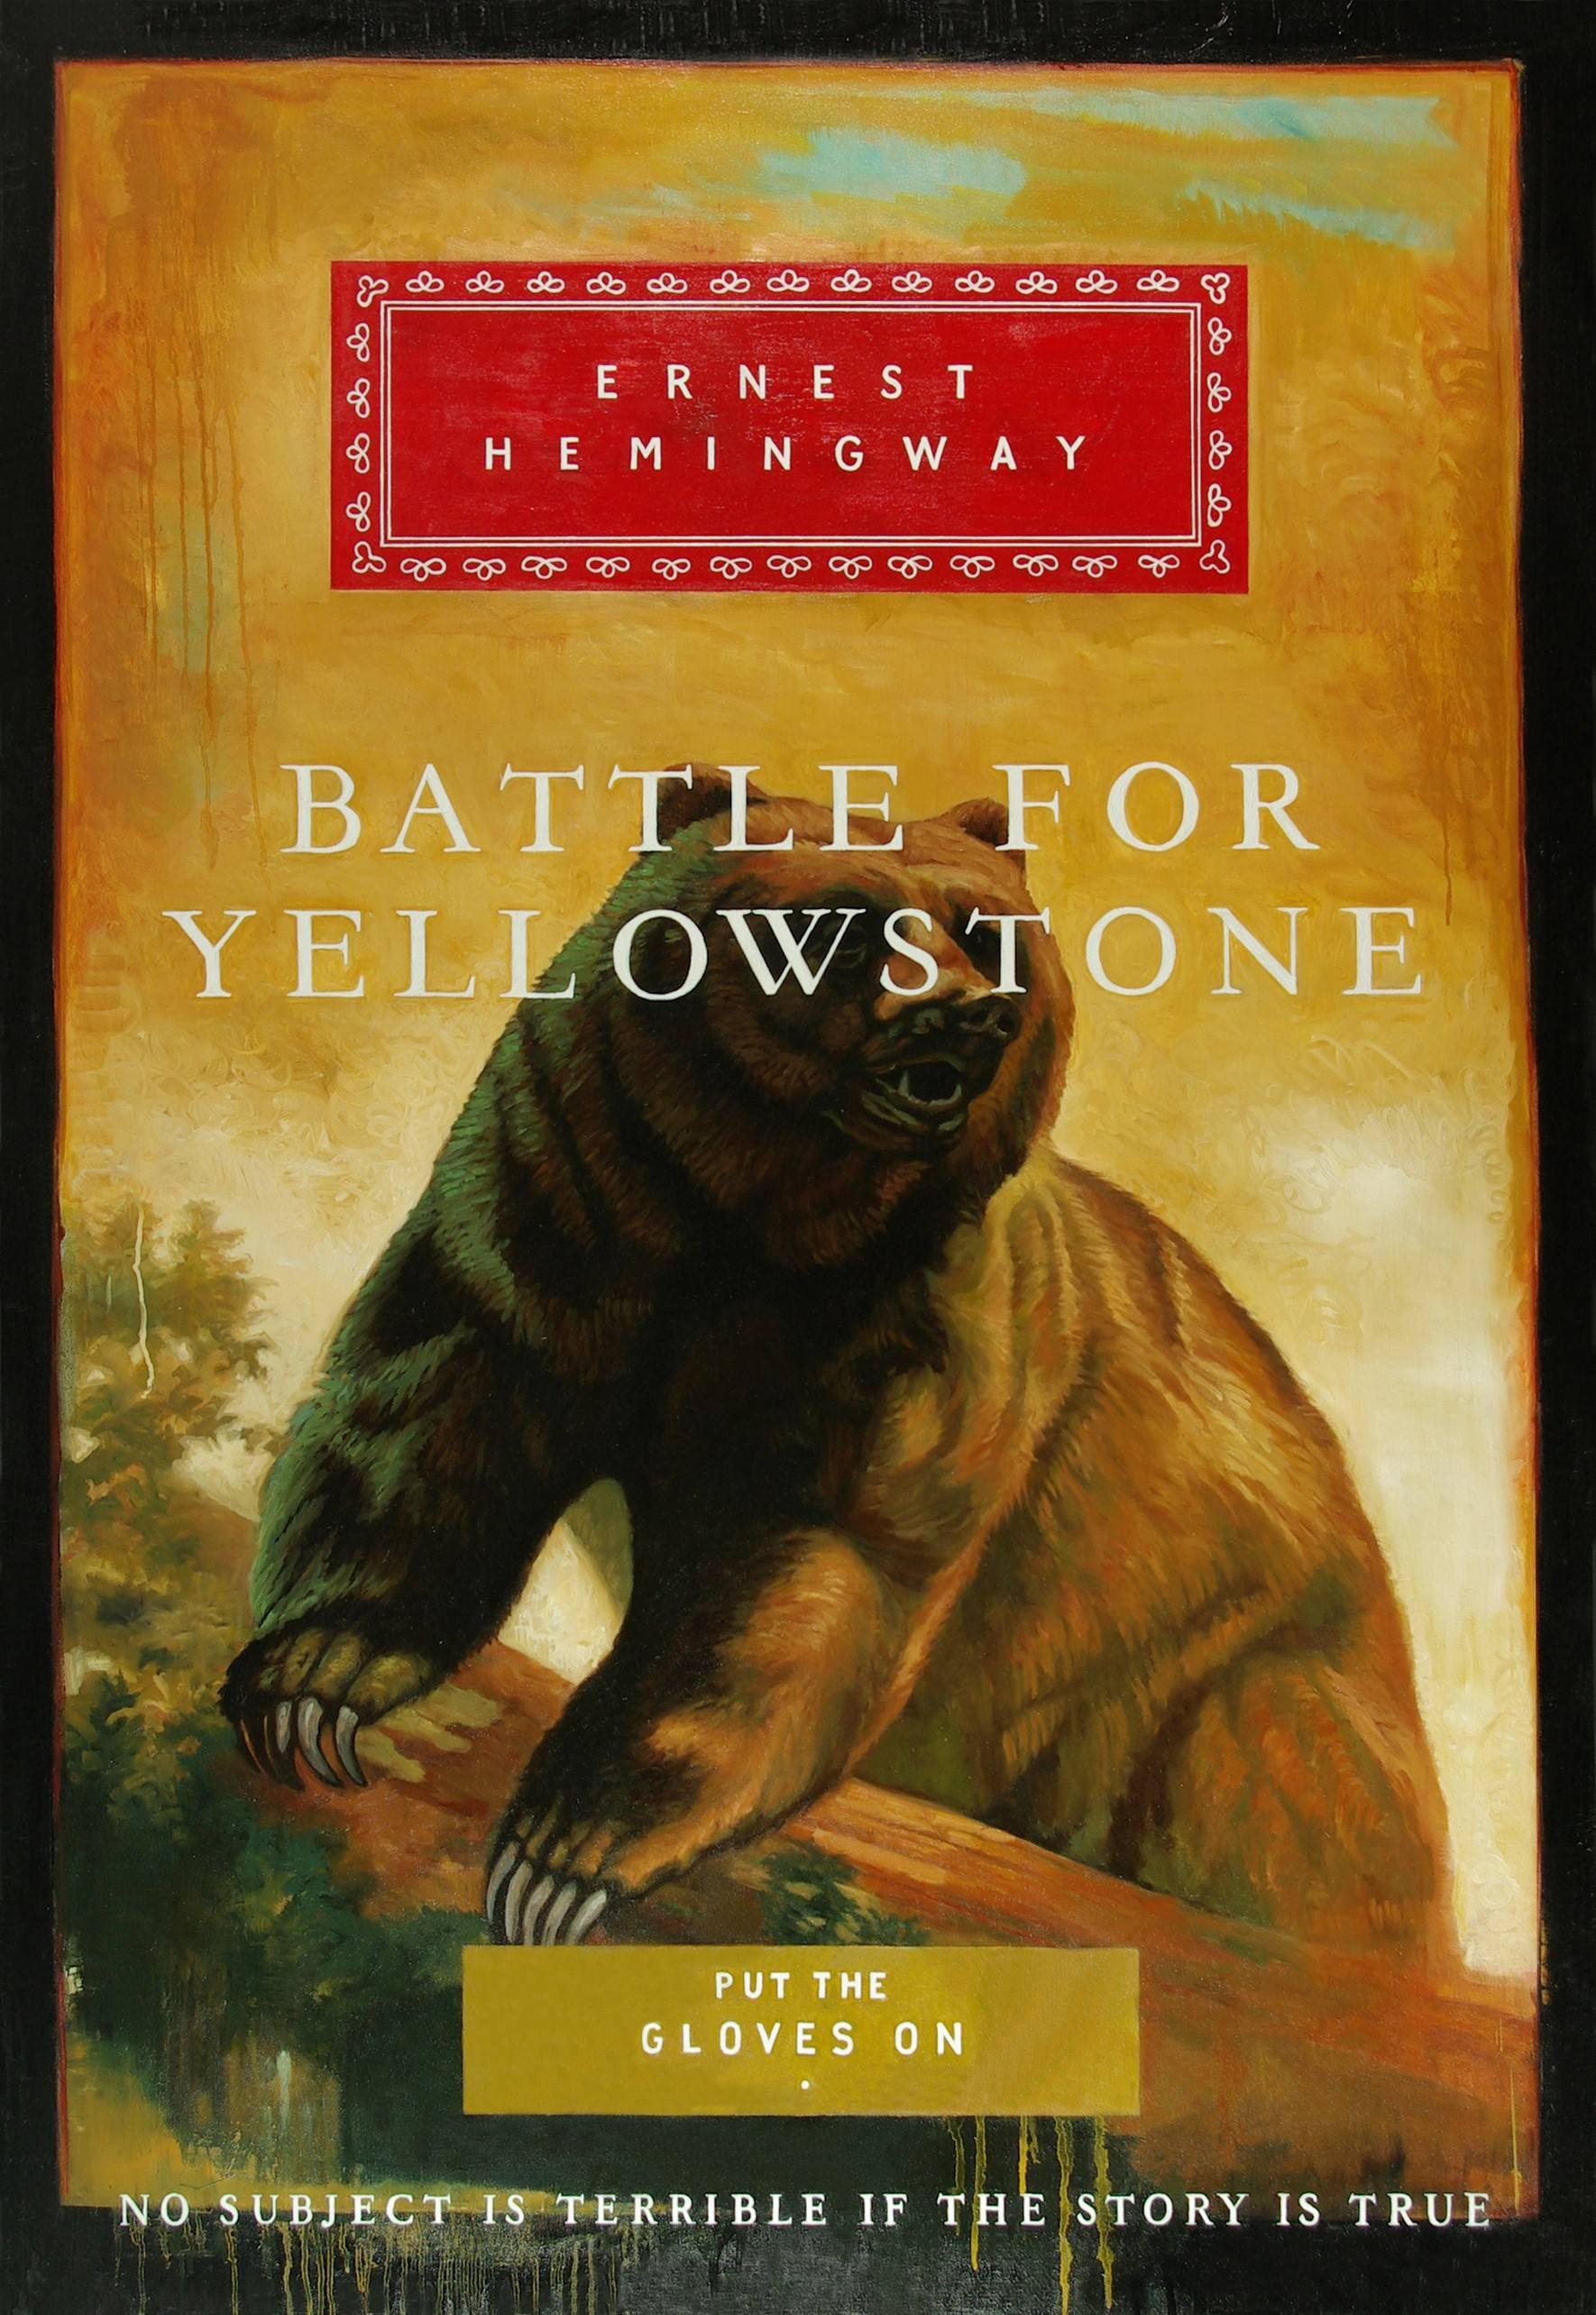 Battle For Yellowstone, Original Oil Painting of Oversized Fictional Bookcover